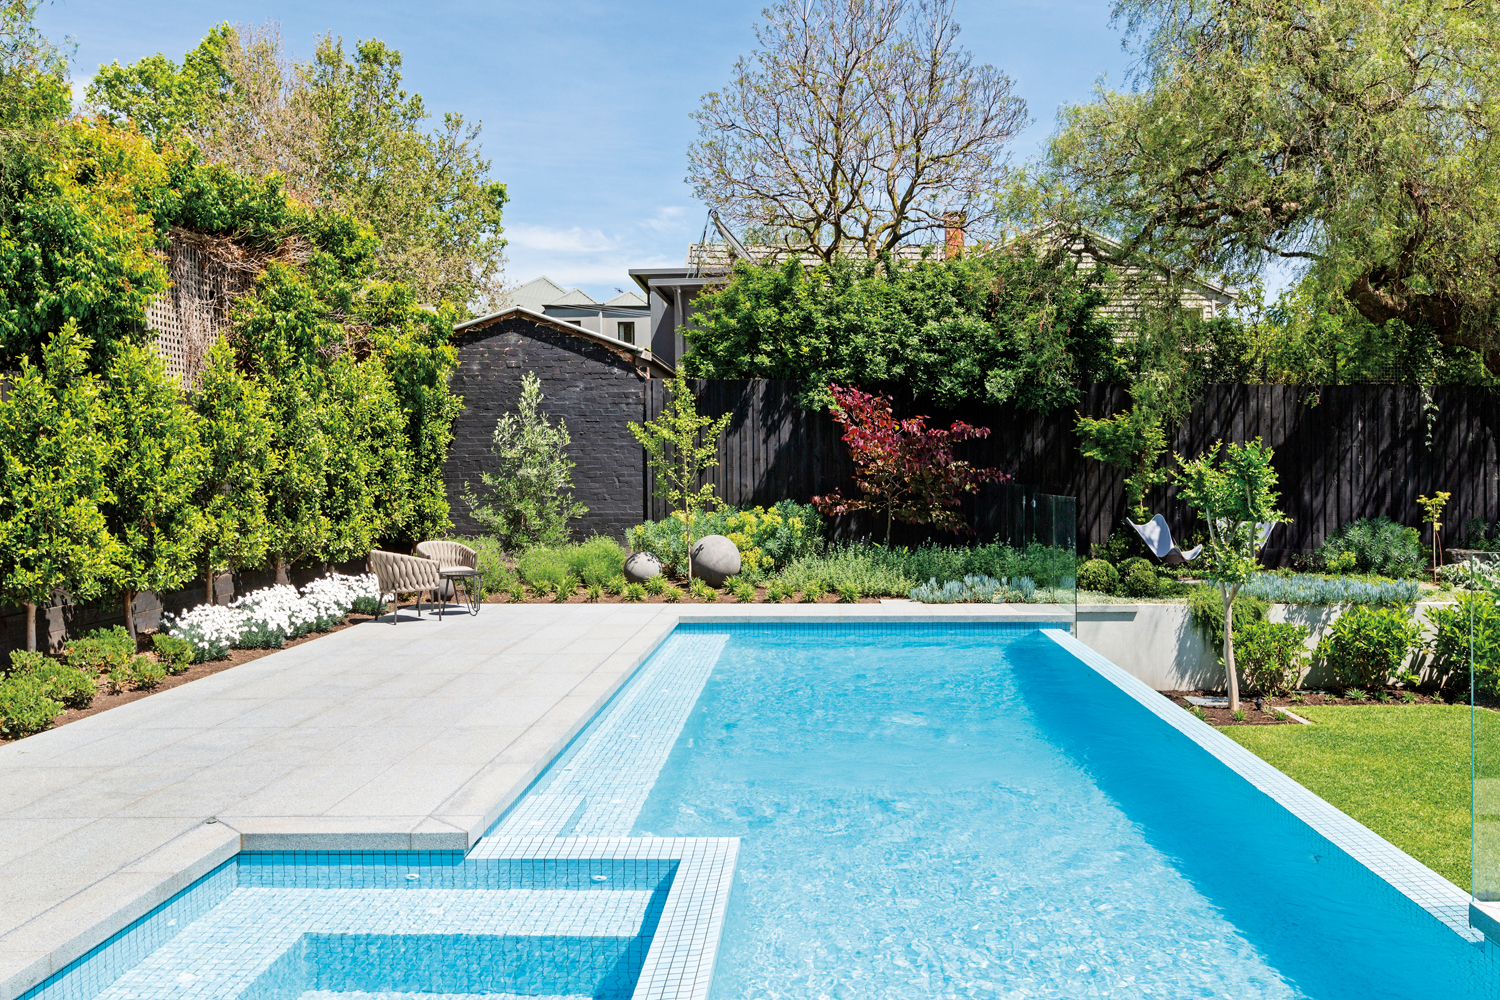 This Melbourne pool and landscape is the perfect urban oasis